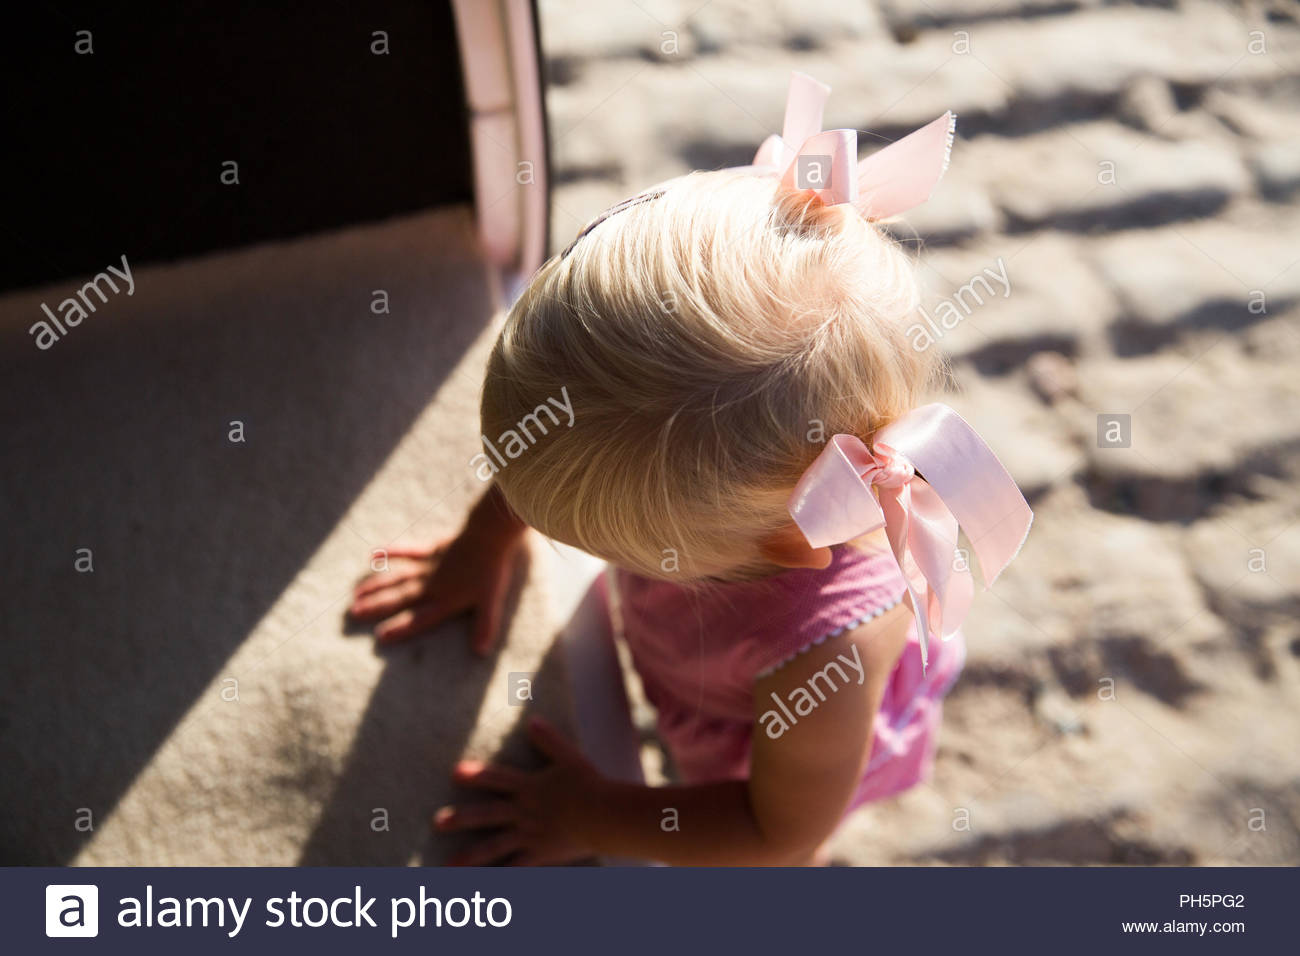 High angle view of a girl in a van - Stock Image